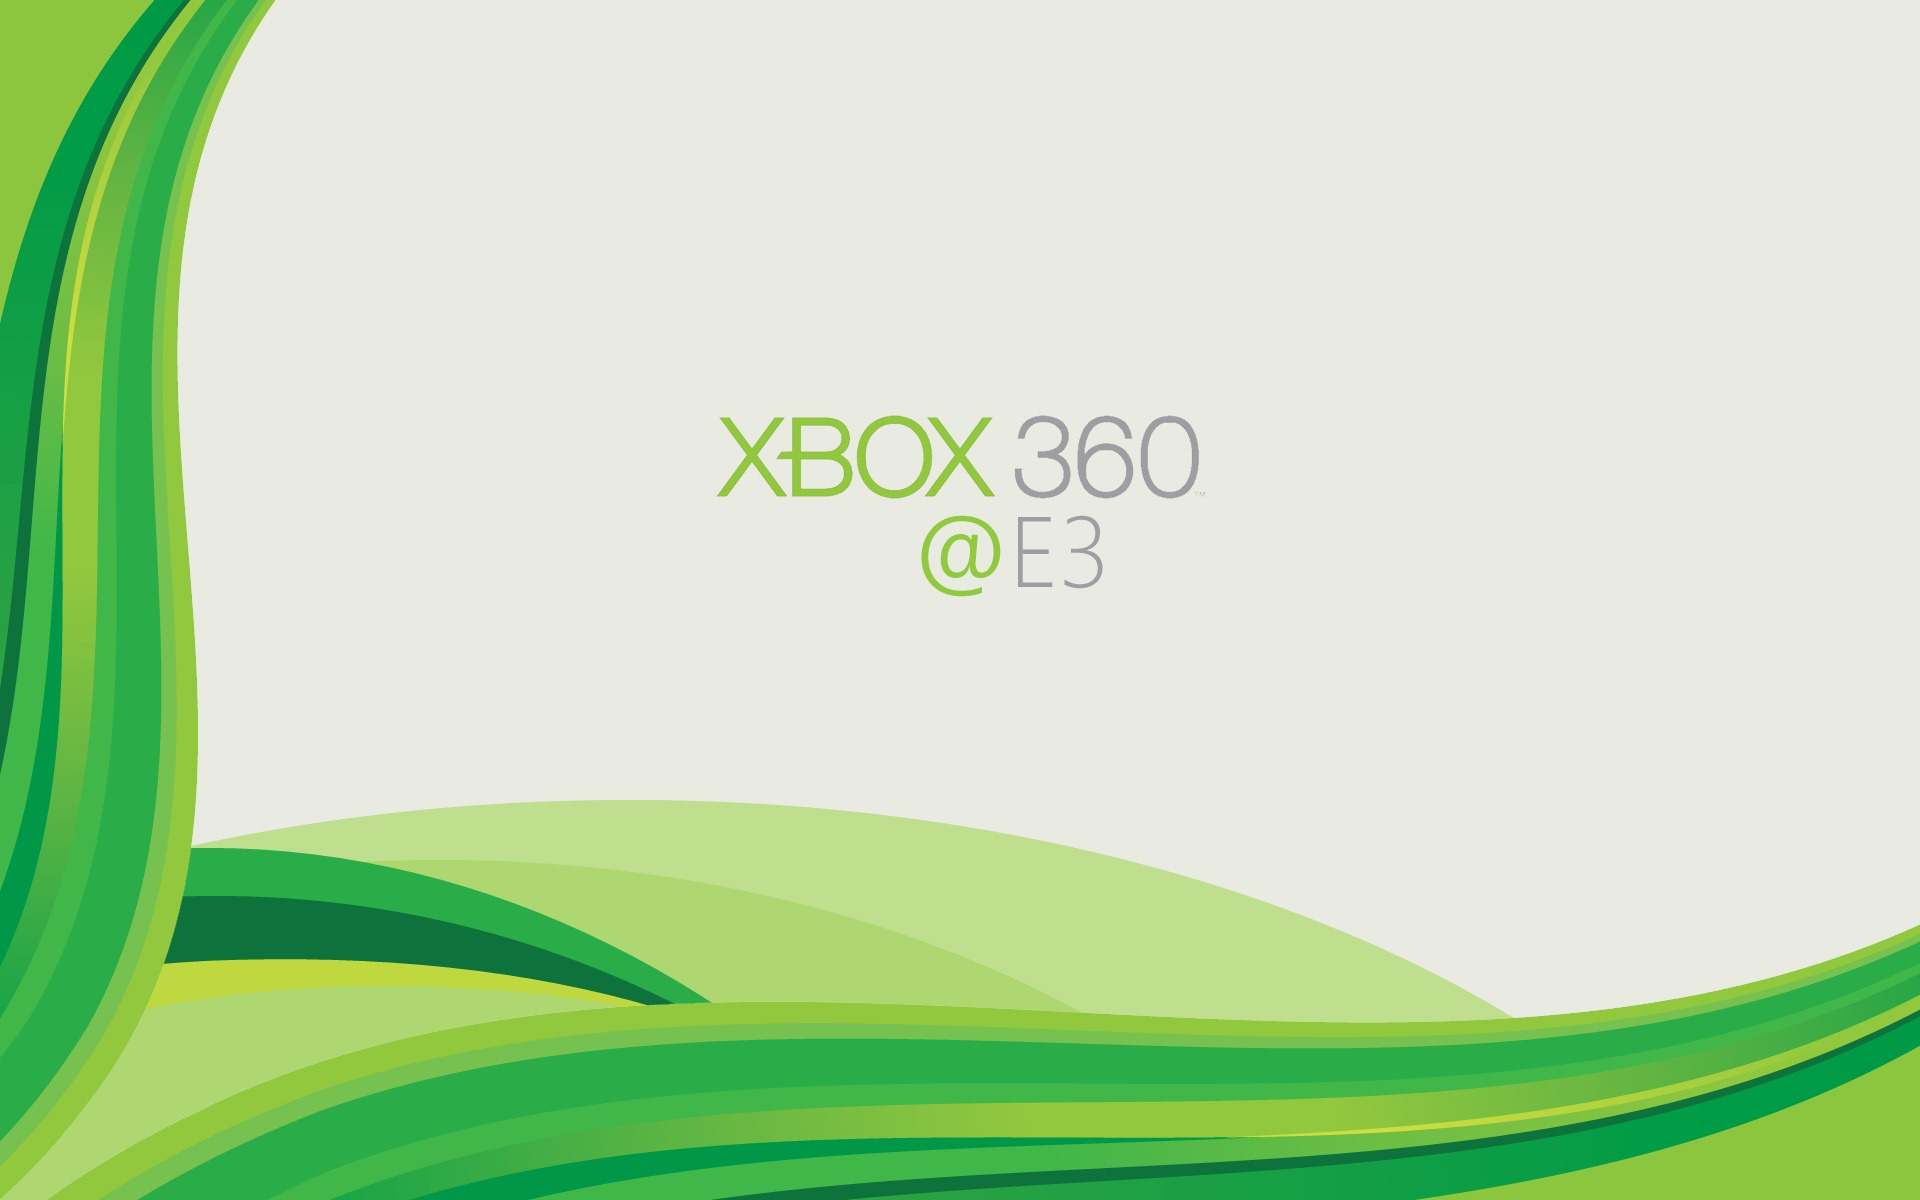 Xbox Iphone Wallpaper This xbox 360 wallpaper is